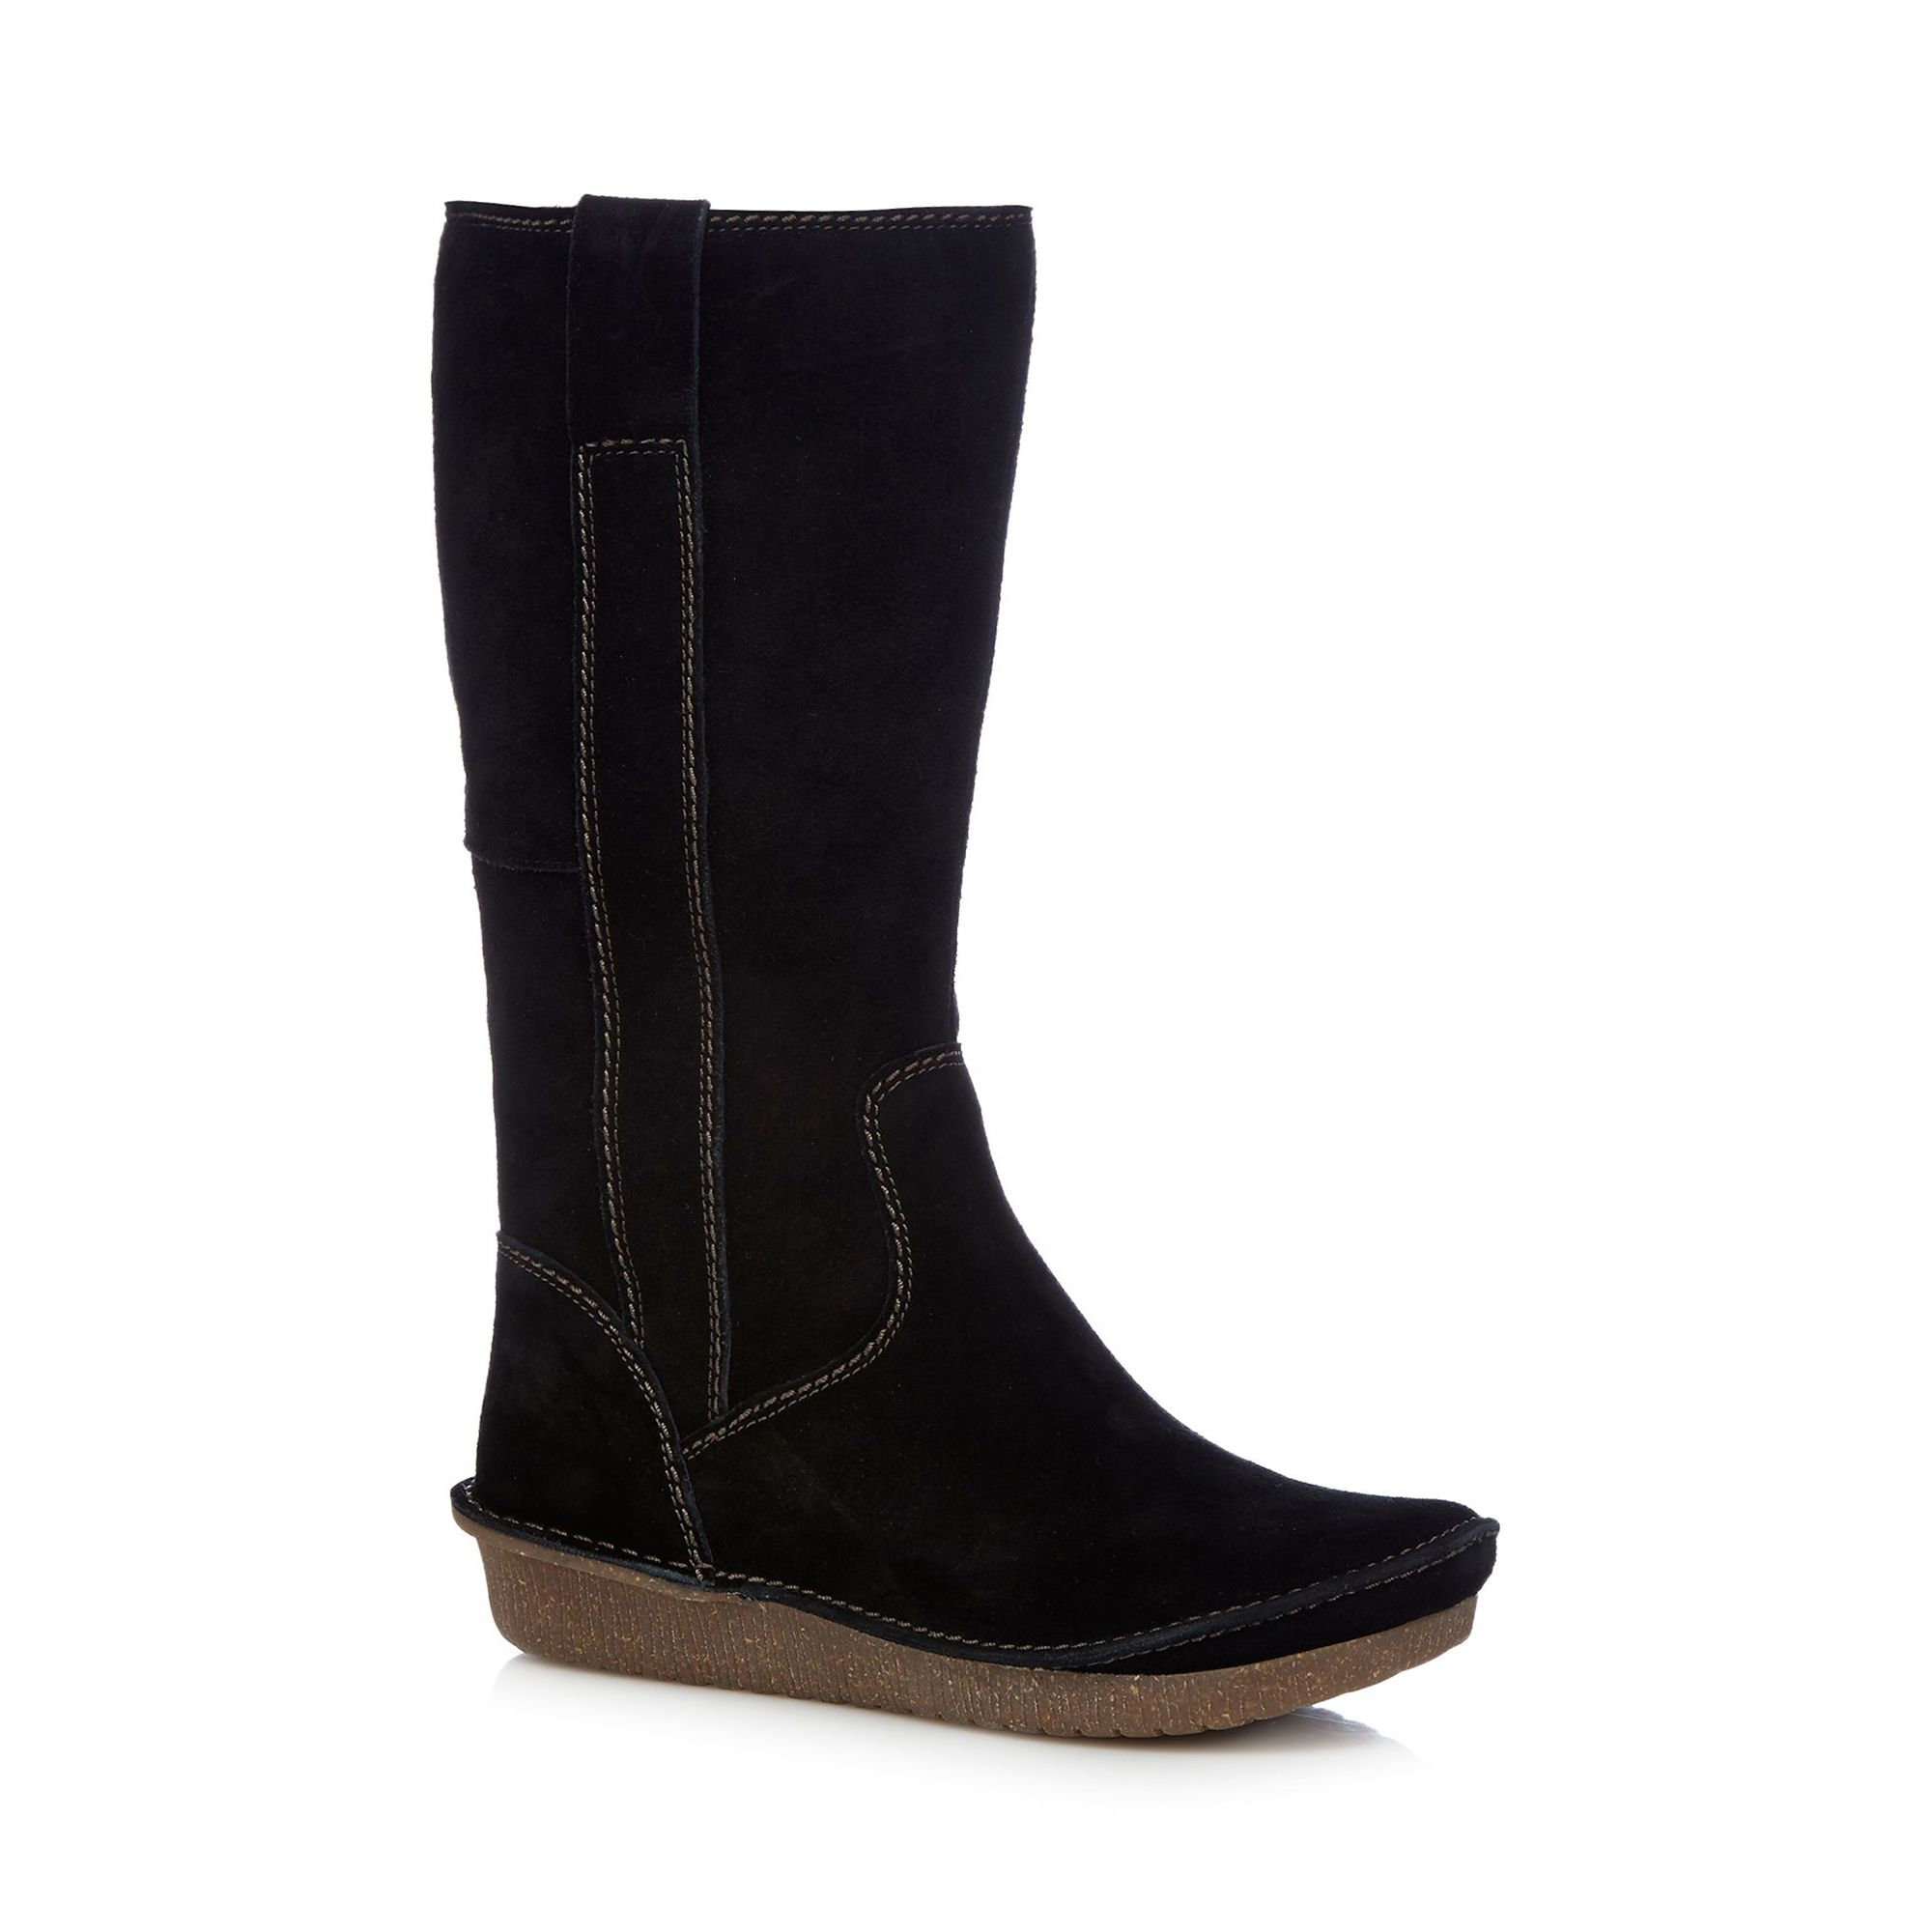 clarks womens black lima rhapsody knee high boots from